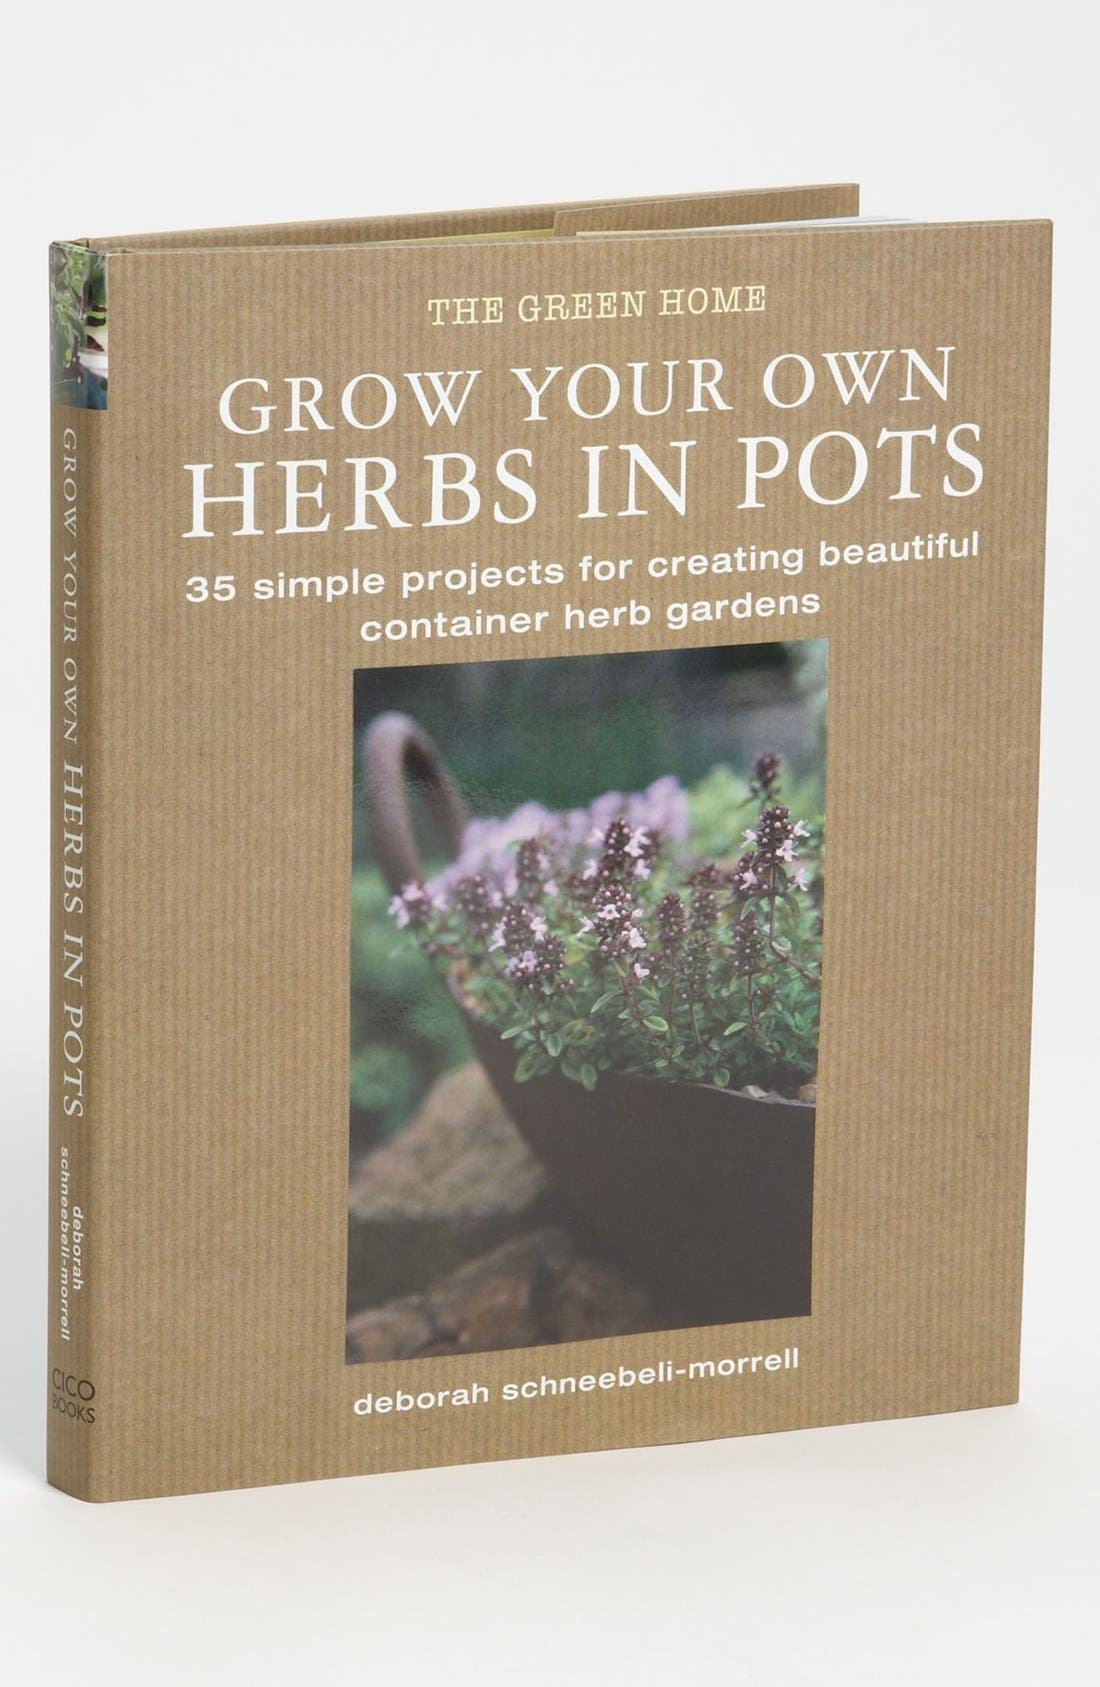 Alternate Image 1 Selected - 'Grow Your Own Herbs in Pots' Gardening Book